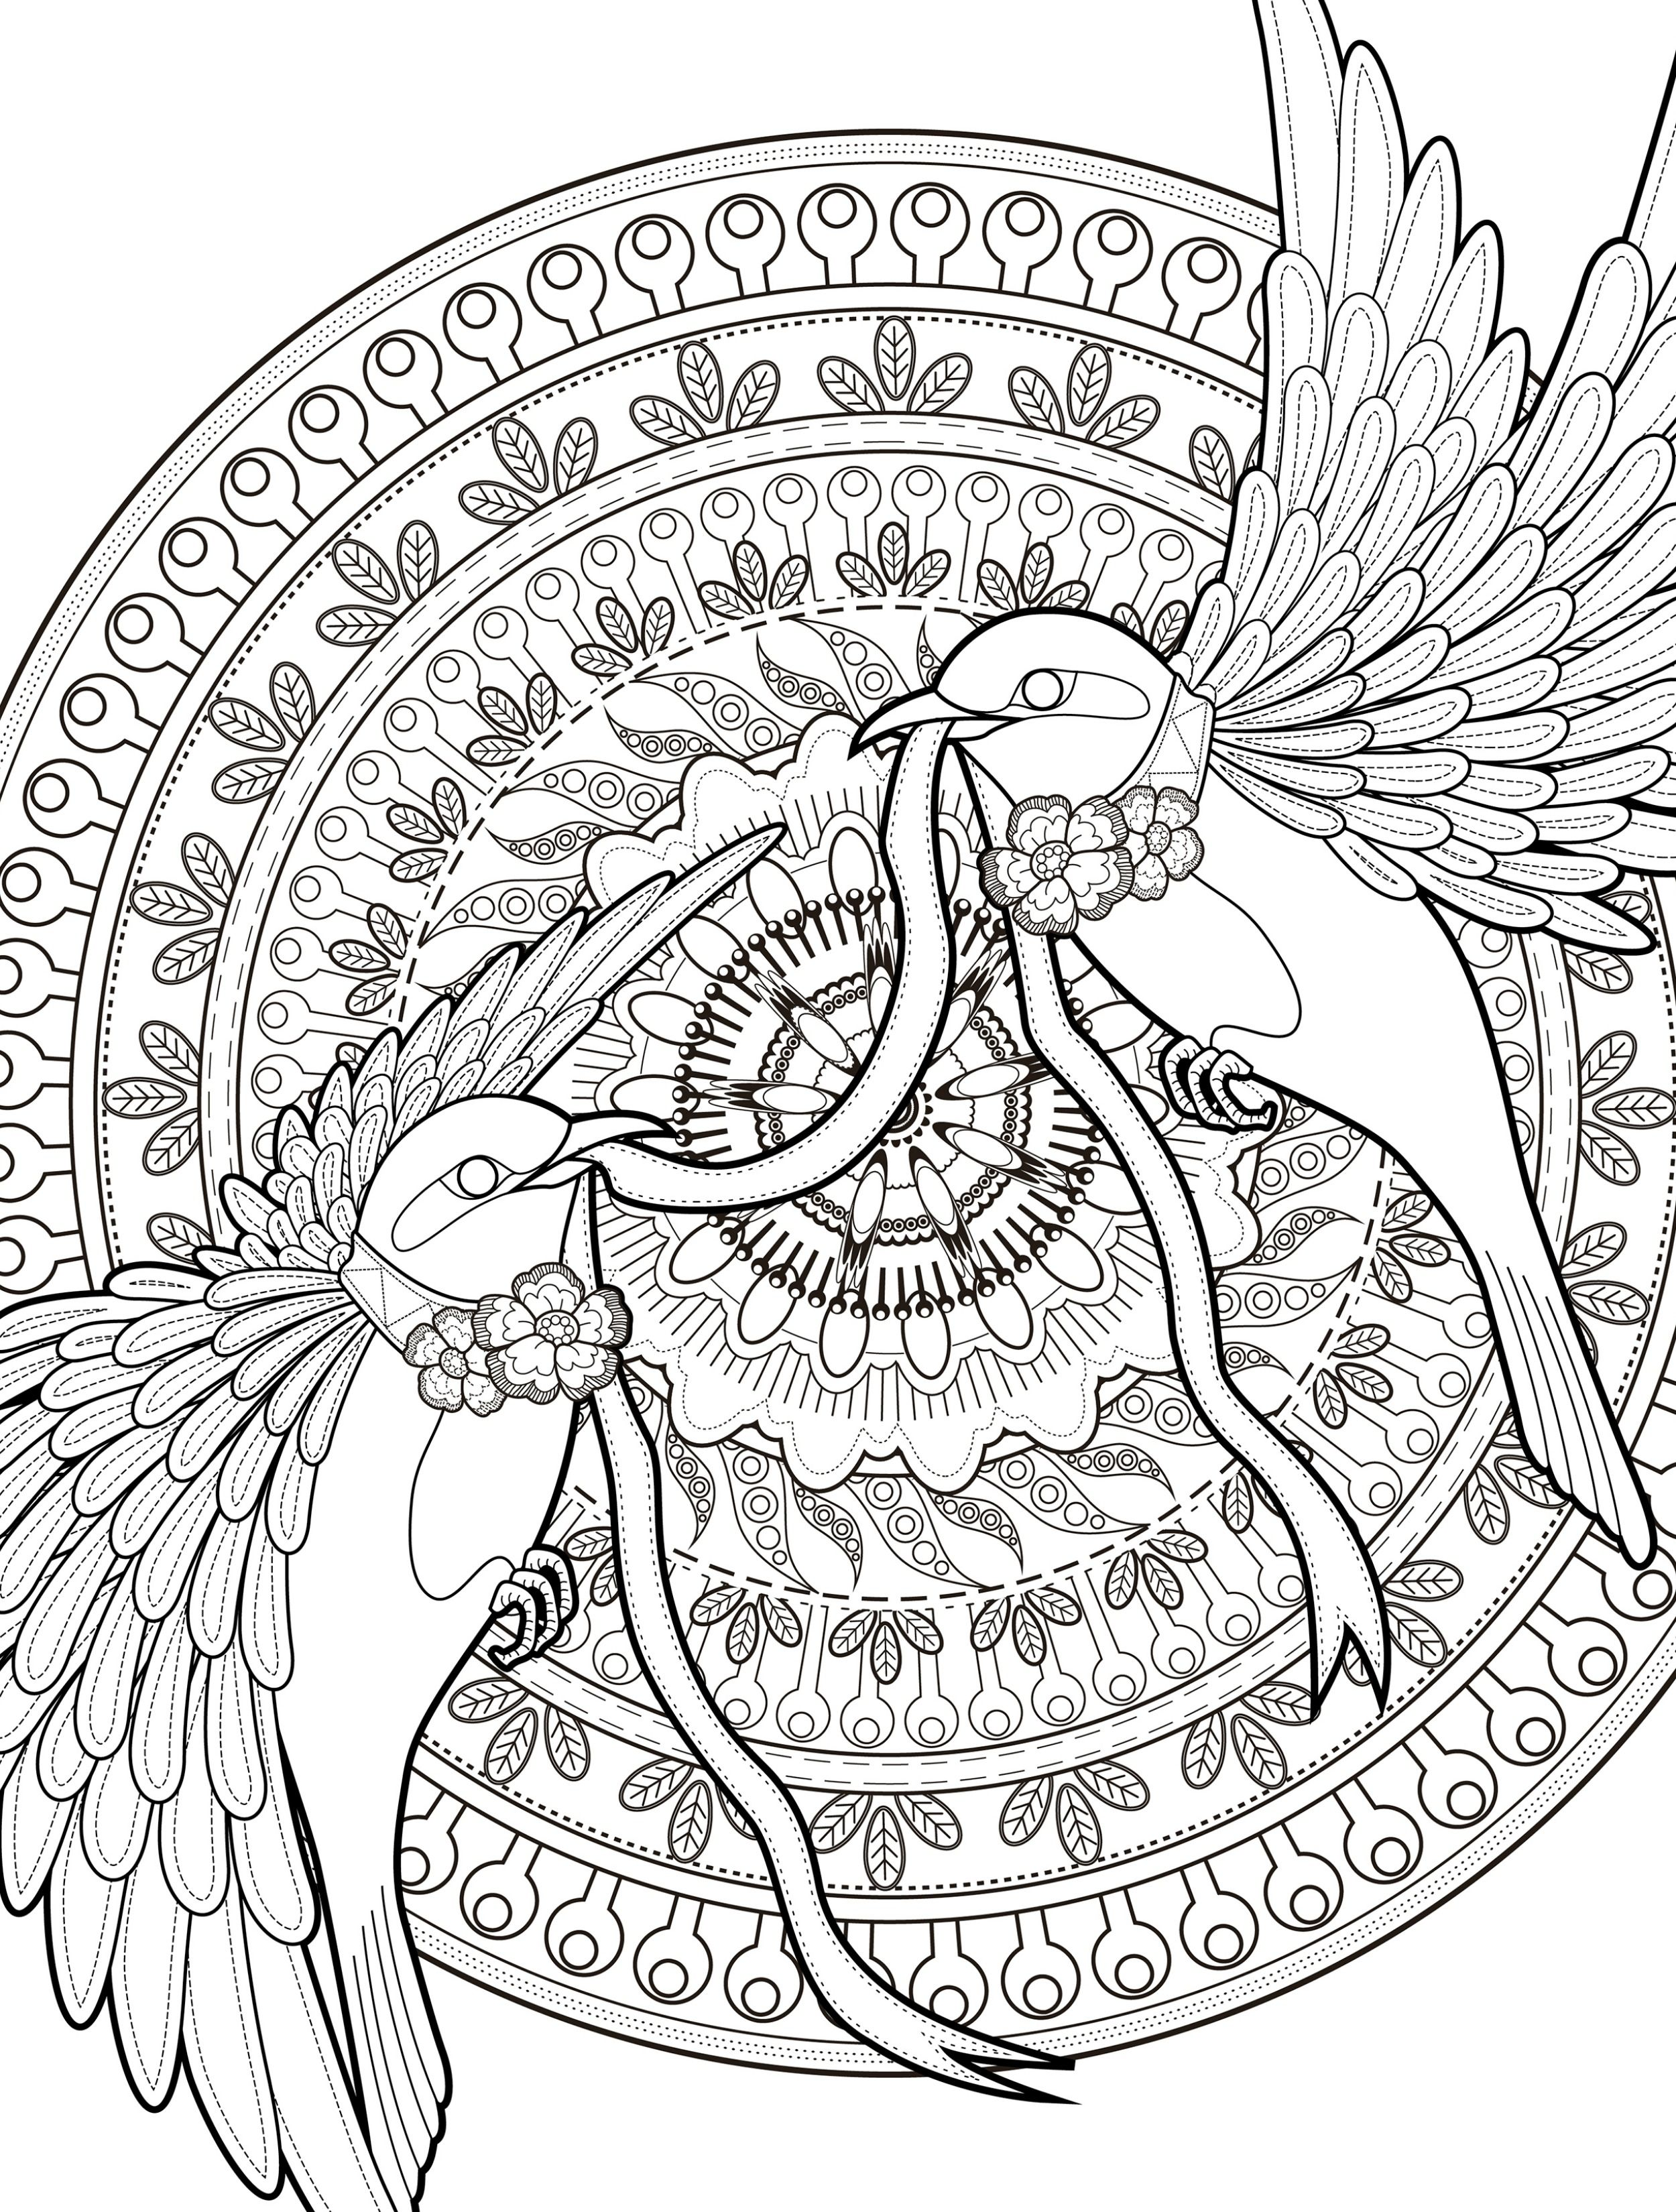 Free coloring pages adults printable - 24 More Free Printable Adult Coloring Pages Page 24 Of 25